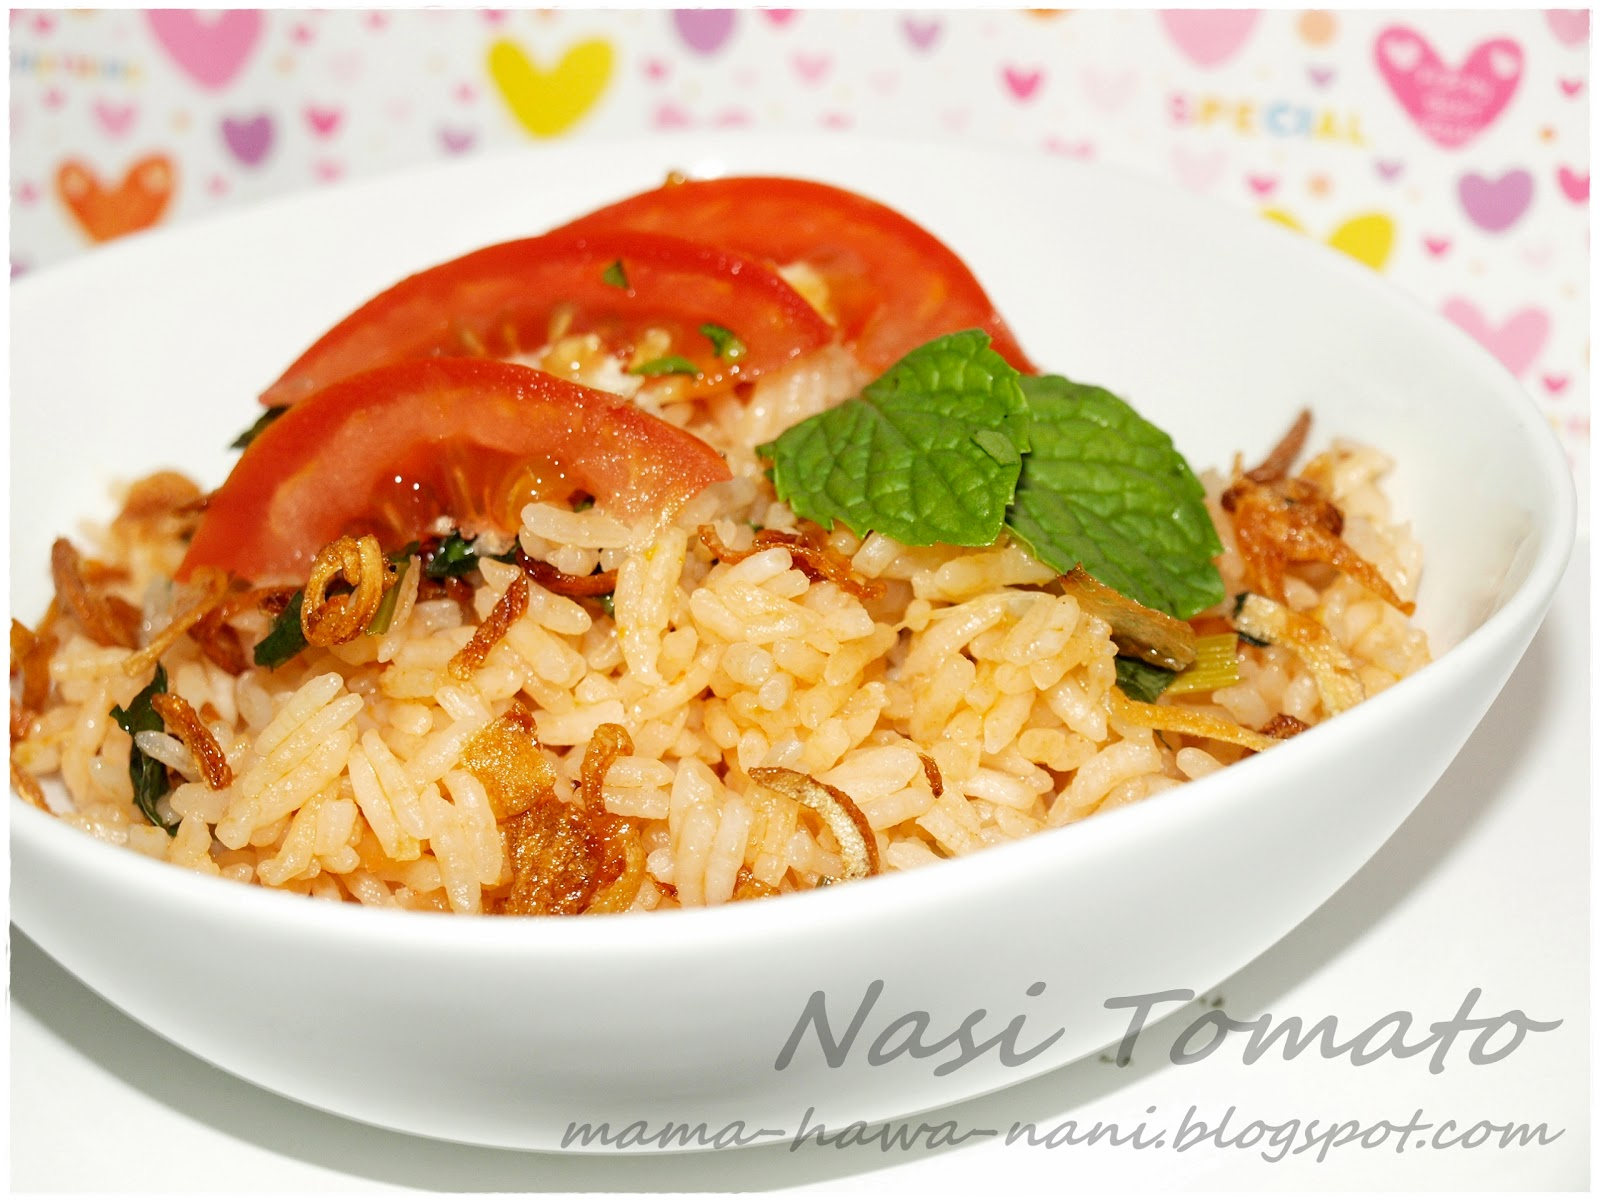 Sometimes things doesnt happen the way we want: Nasi tomato